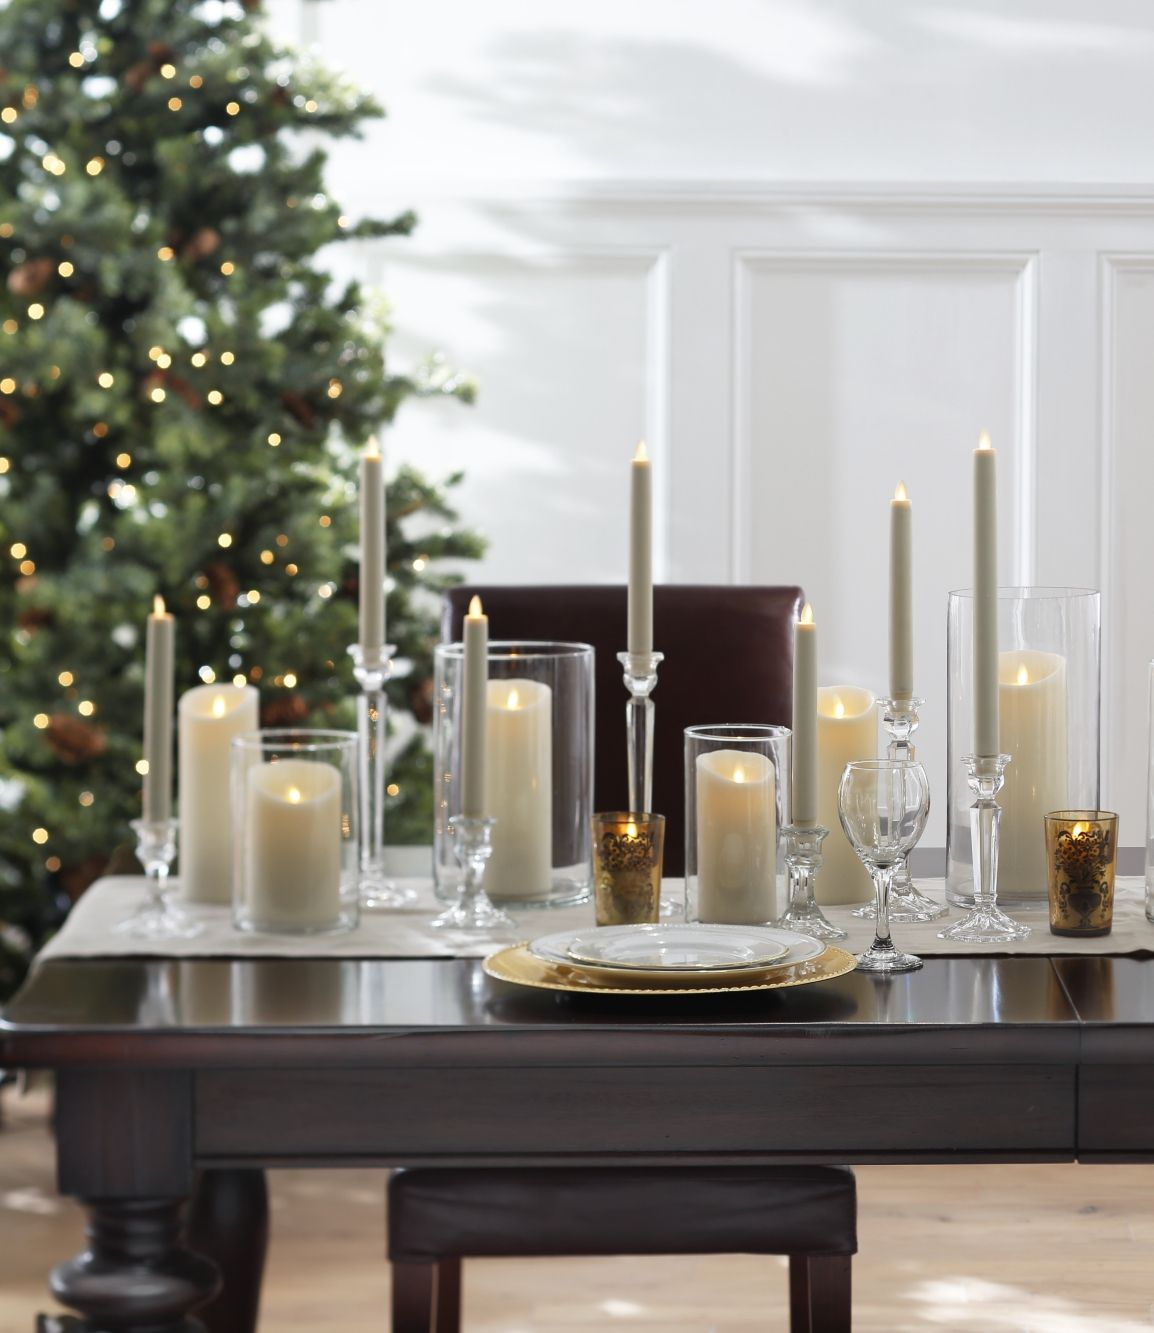 Easy Elegant Flameless Candle Christmas Centerpiece Ideas Pillar Candle Centerpieces Christmas Table Centerpieces Candles